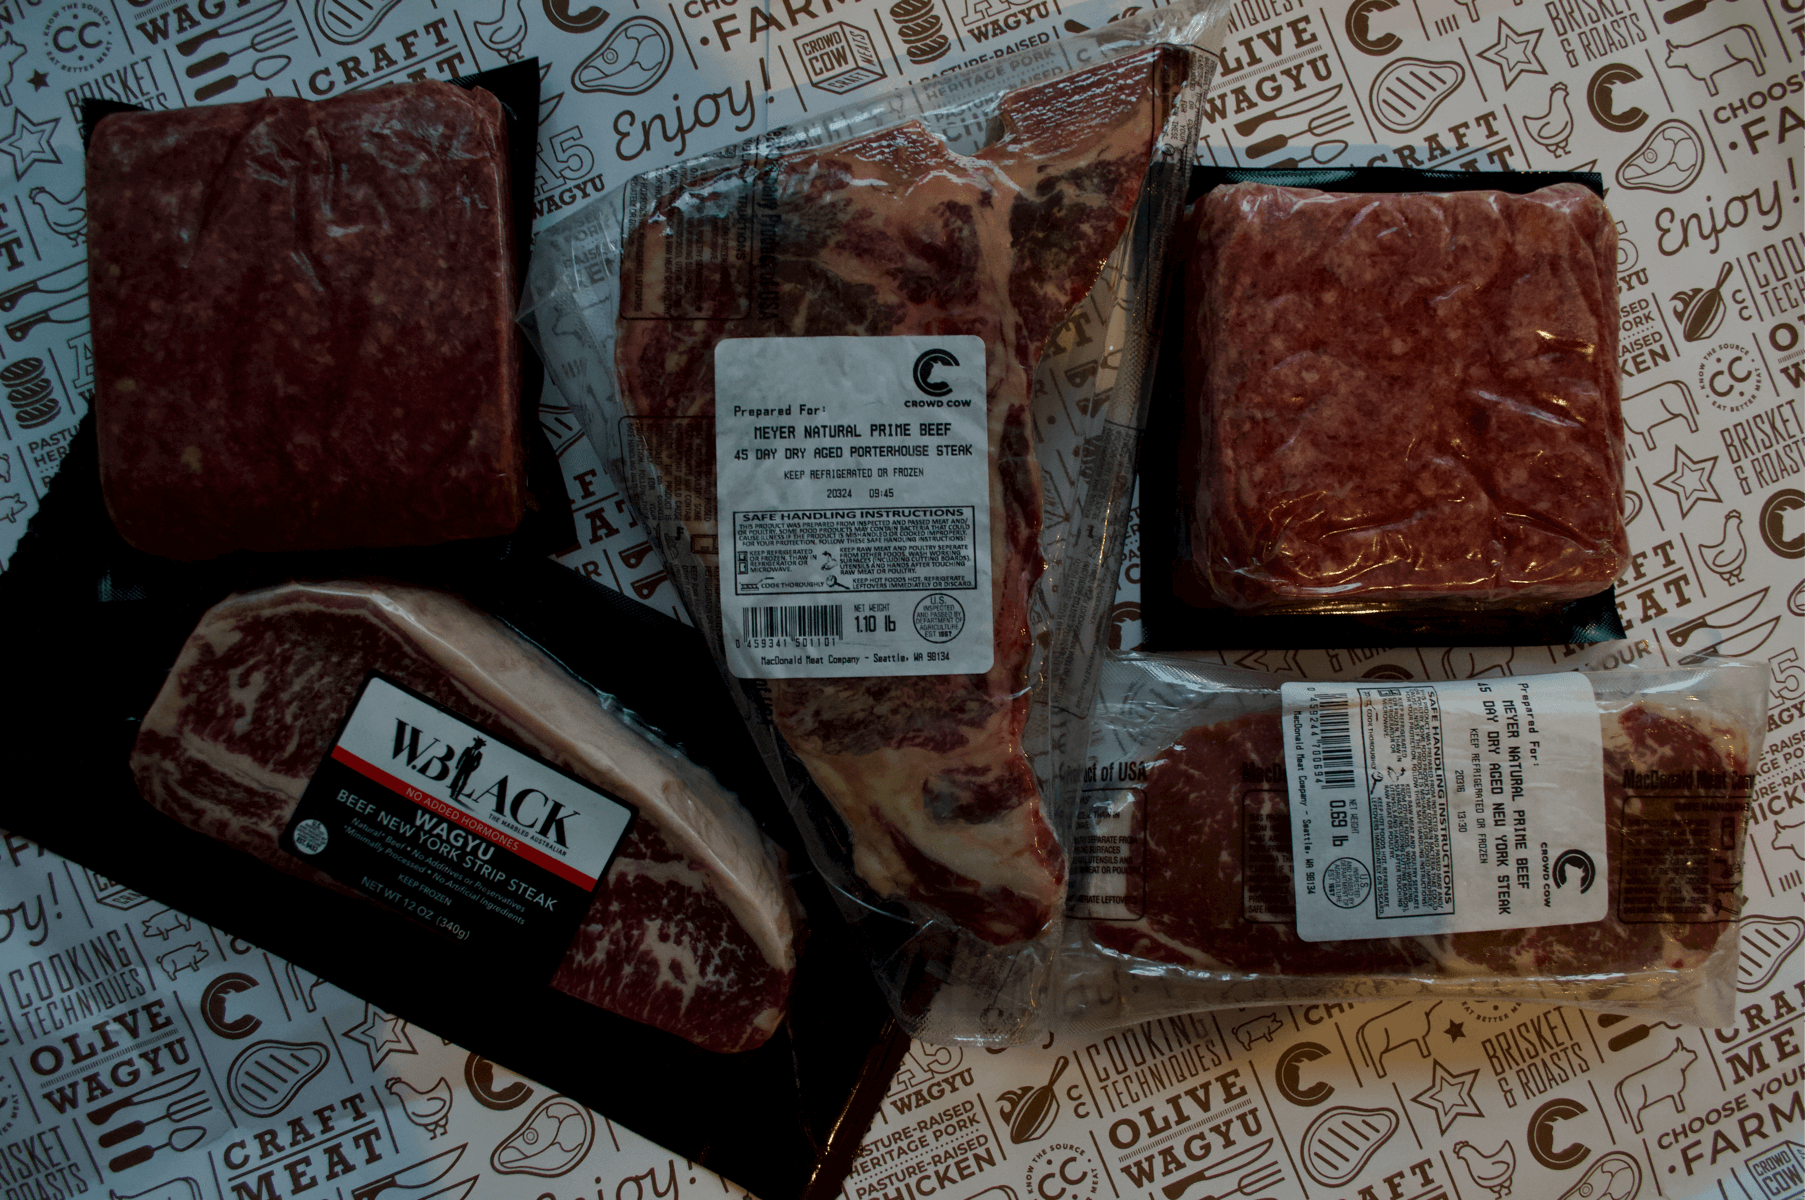 ThawTable The Best way to defrost dry Aged and wagyu New York strip and Porterhouse From Crowd Cow